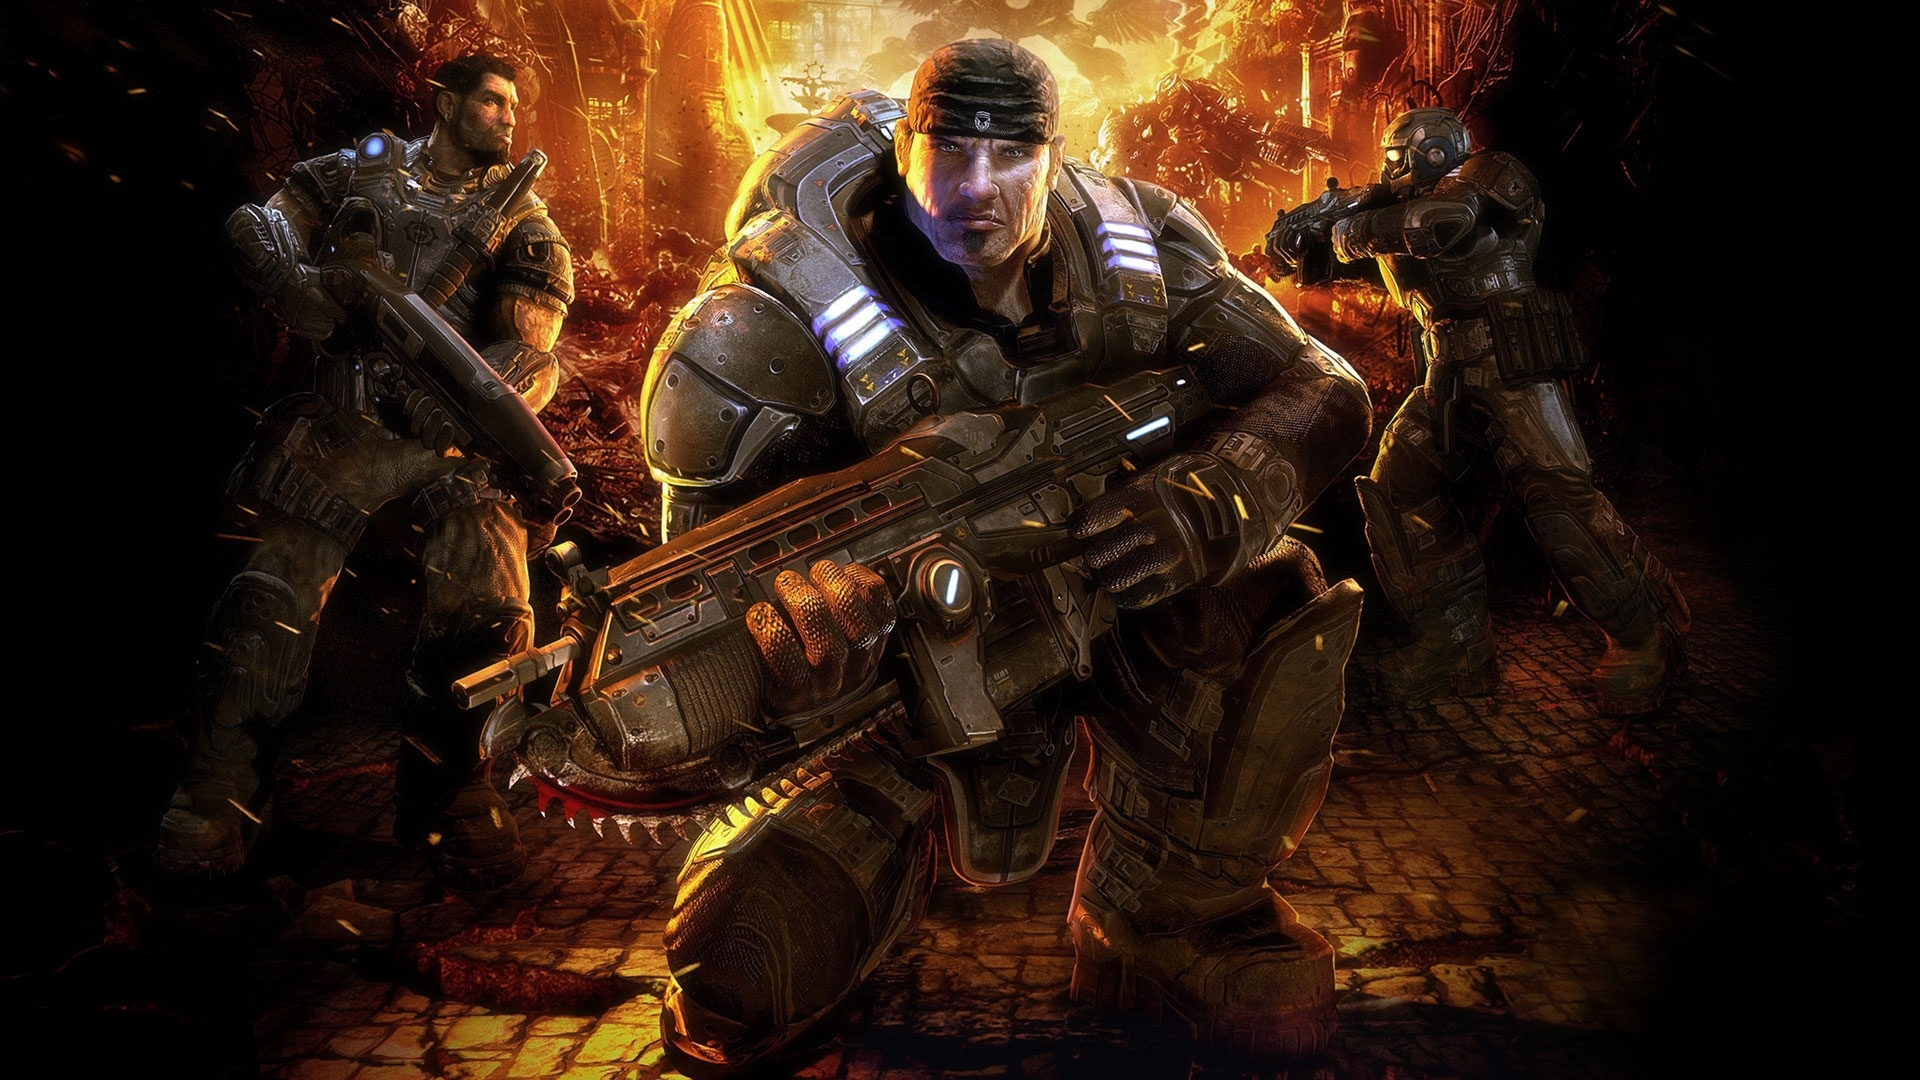 gears of war hd 1080p wallpapers | hd wallpapers | id #8136